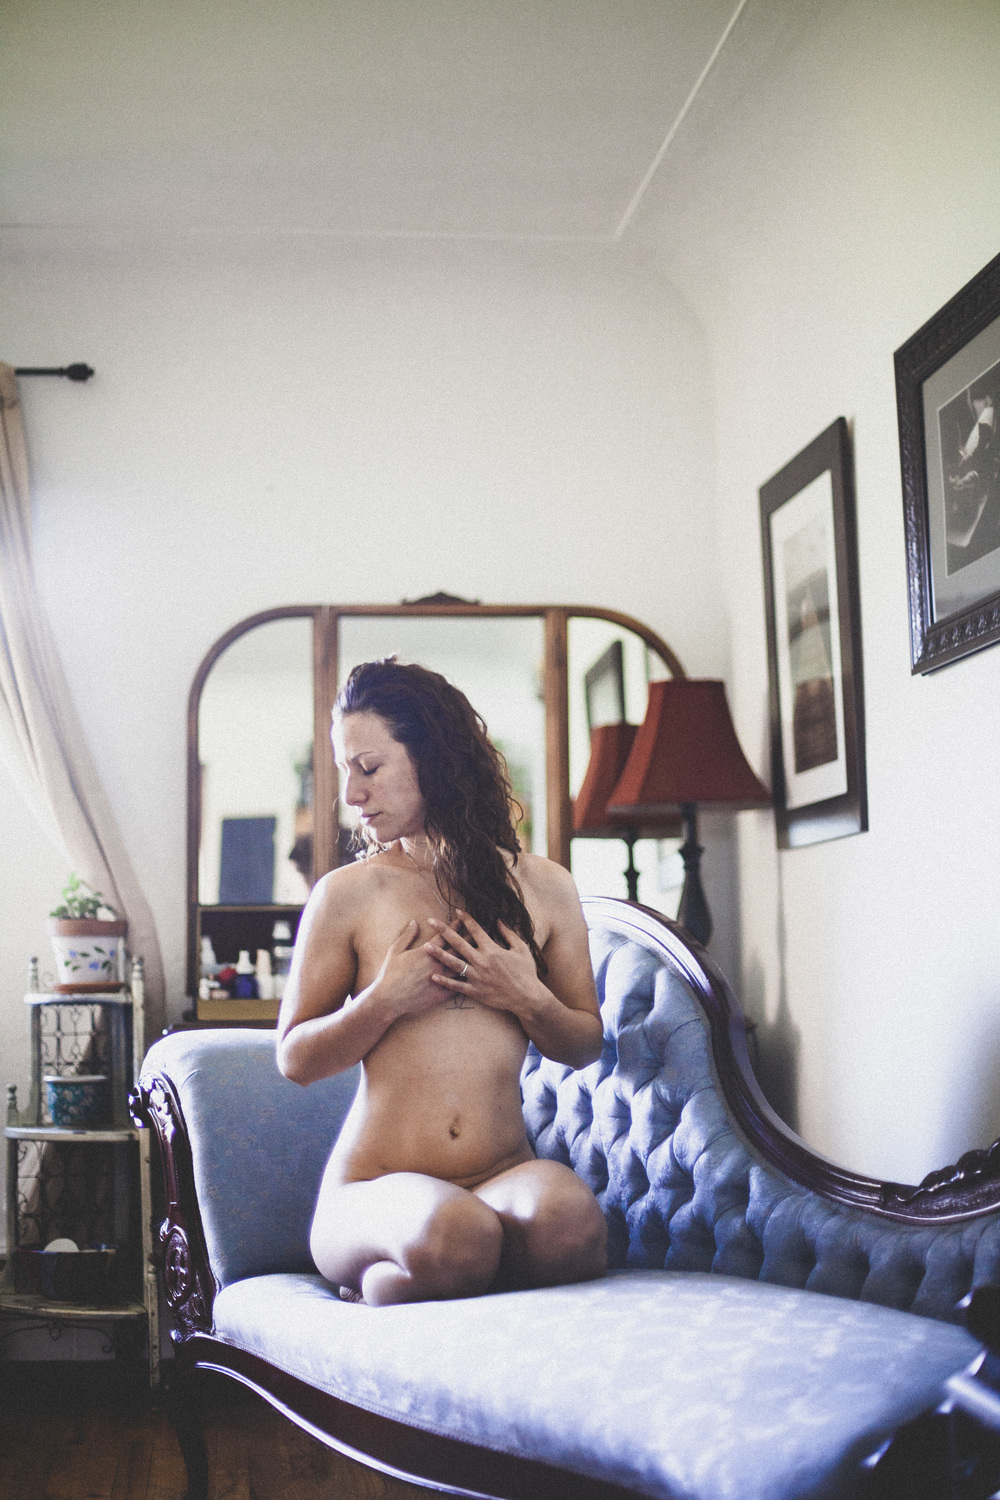 I woke up like this #022 fine art photography nudity body positivity 4